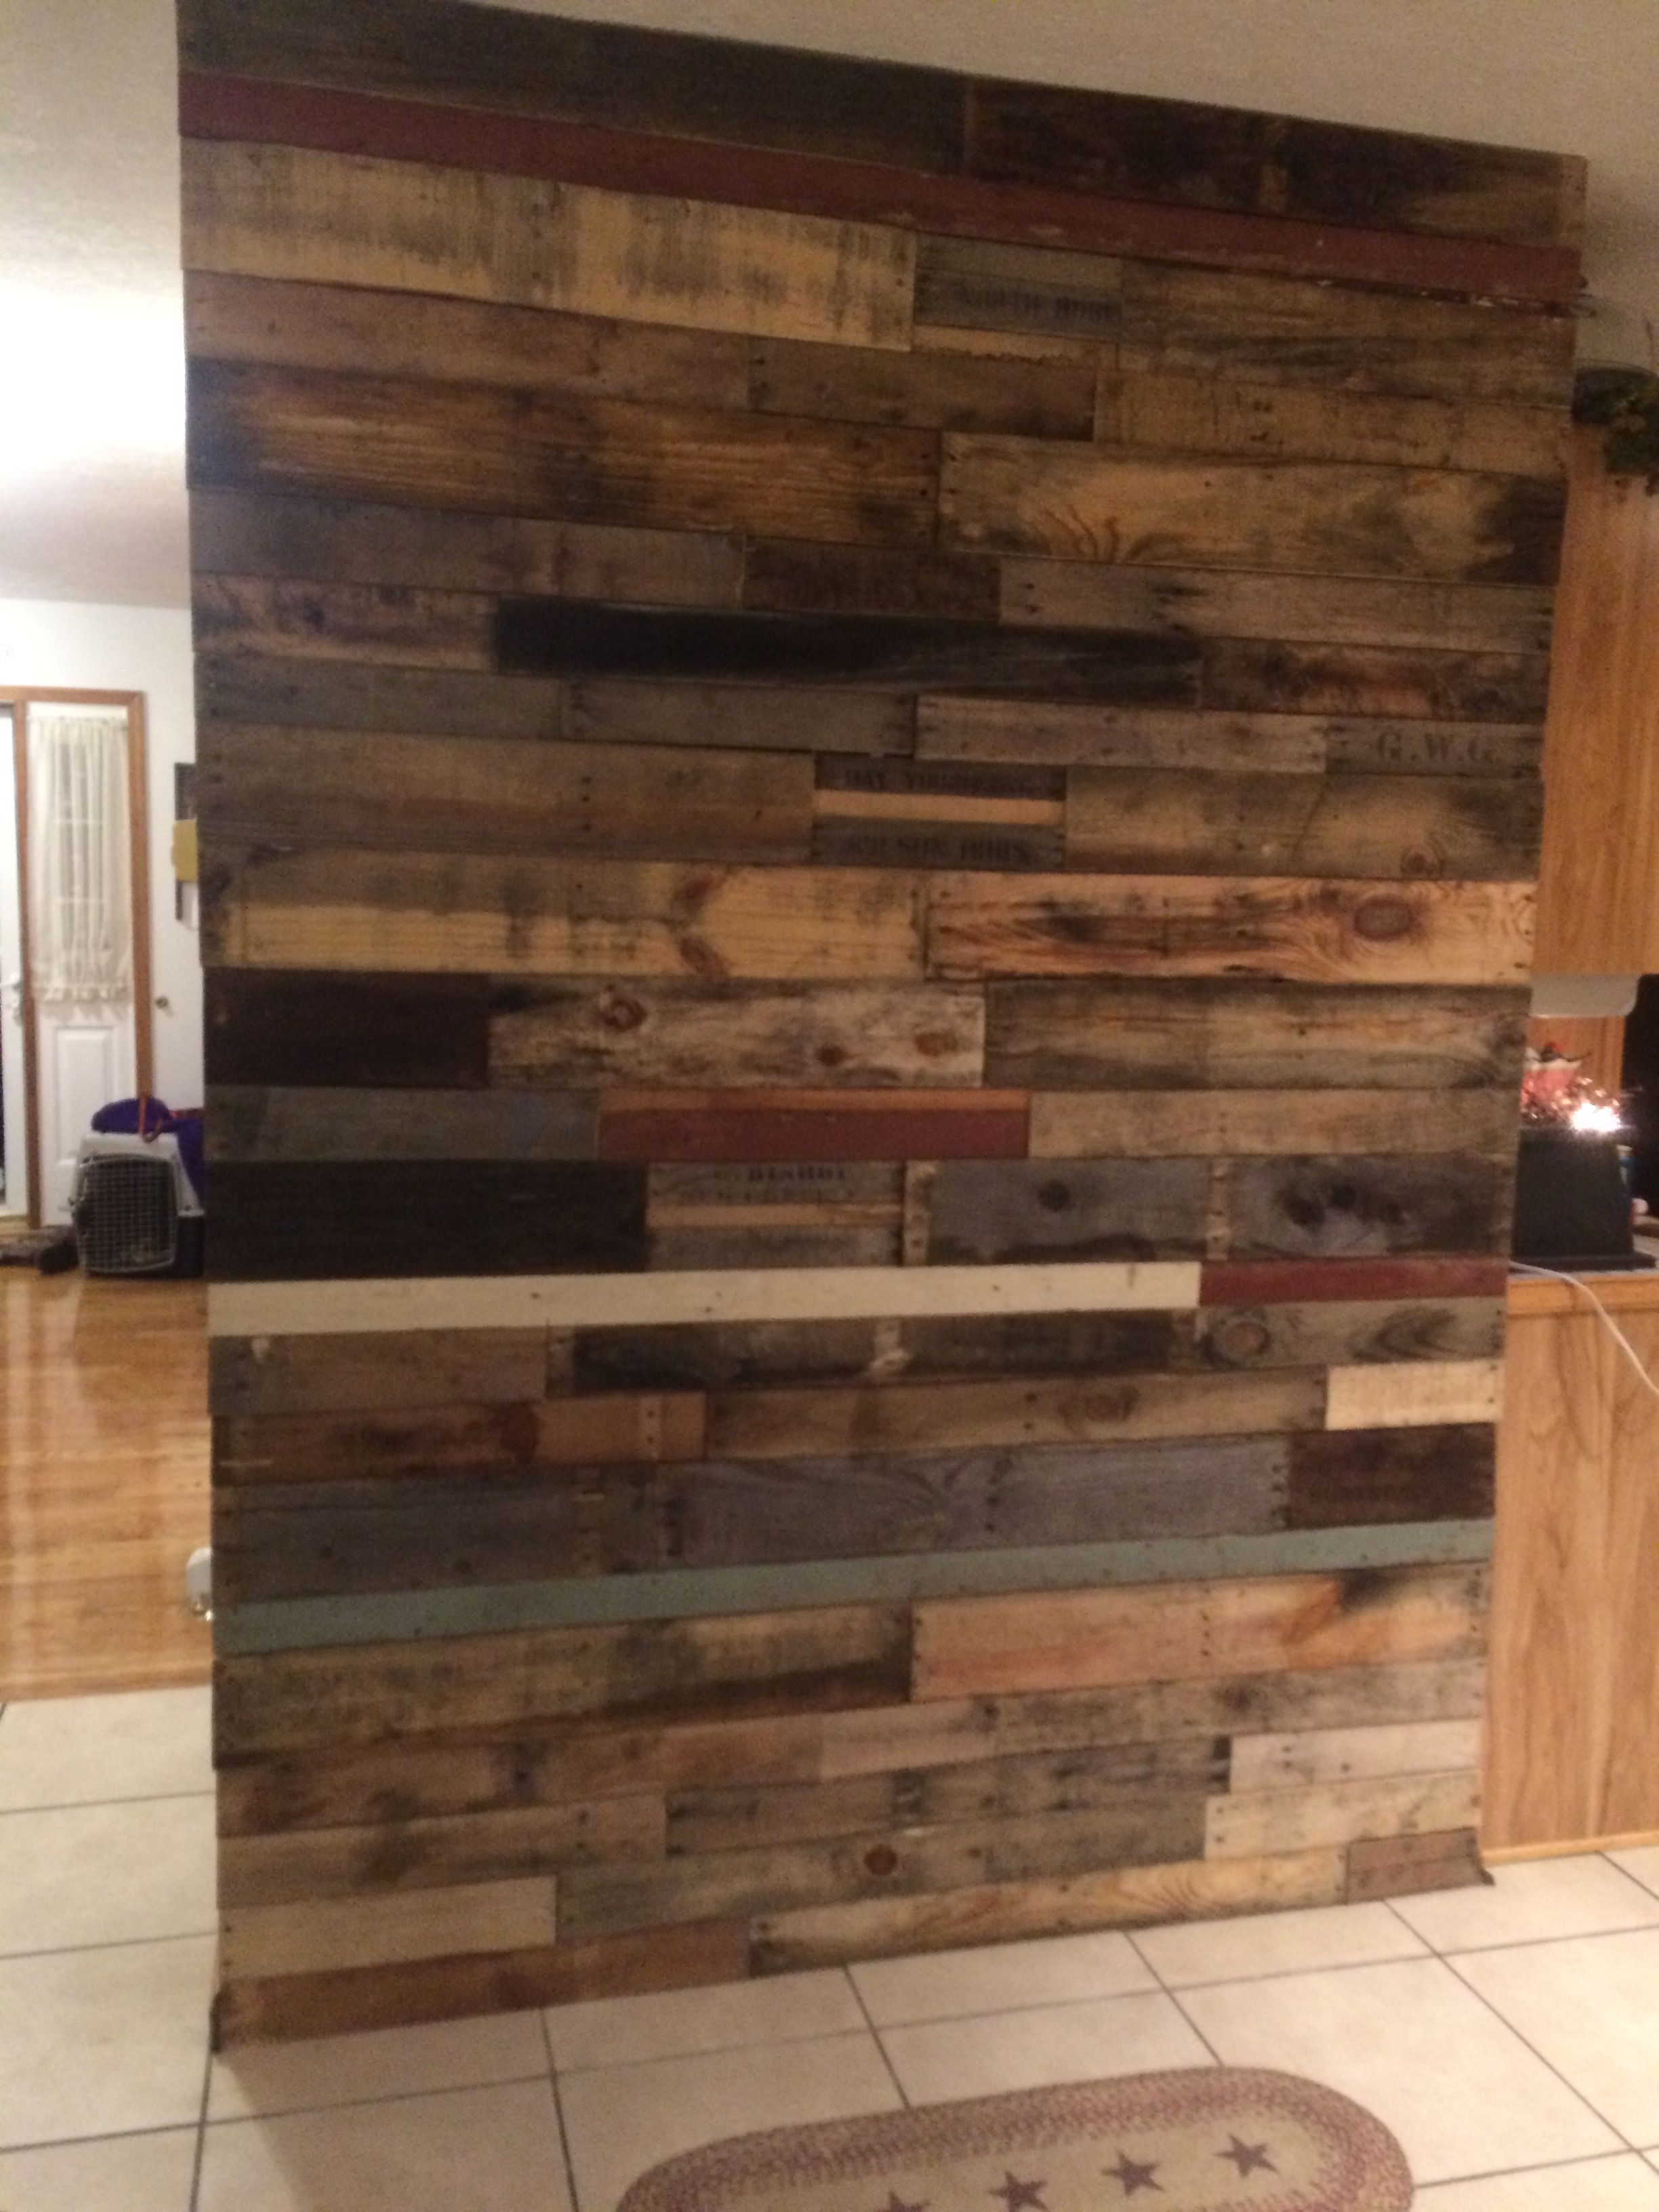 Pin by Shawn keifer on Pallet wall | Wood, Pallet projects